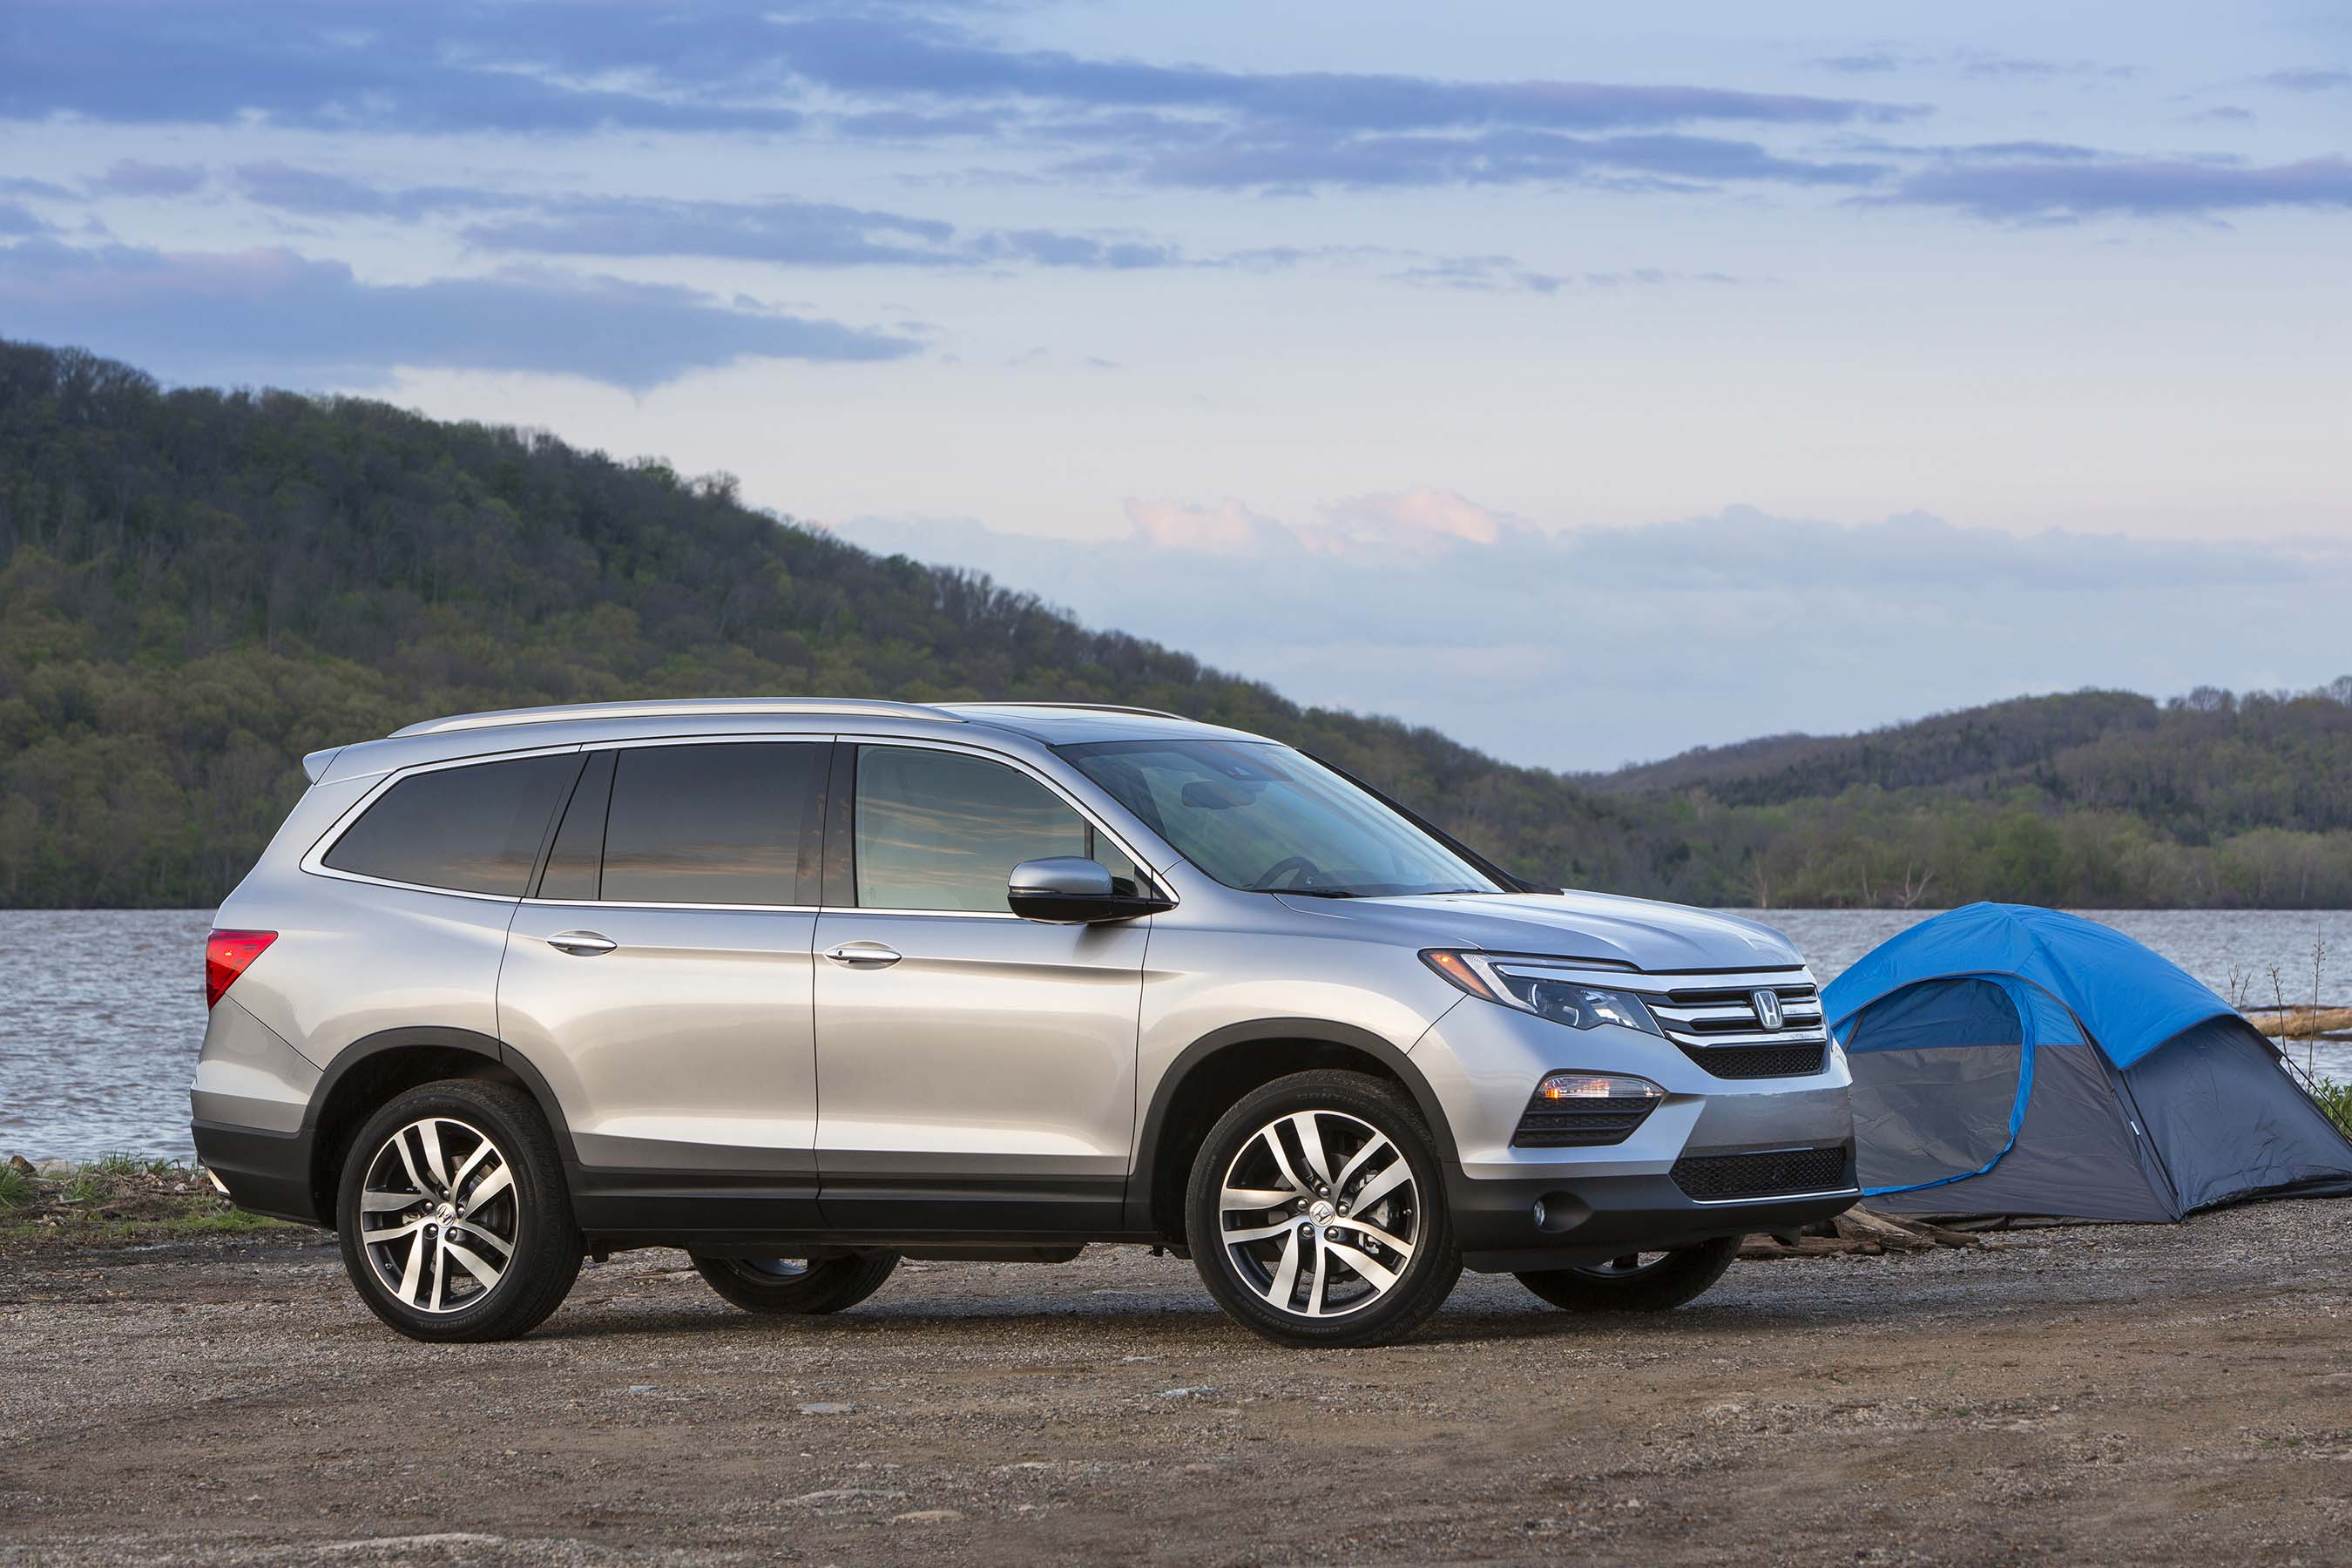 KBB.com 16 Best Family Car: The totally redesigned 2016 Honda Pilot is the family-friendliest mid-size SUV in existence. It was also named KBB.com's Best Buy for 2016 in the mid-size SUV category.